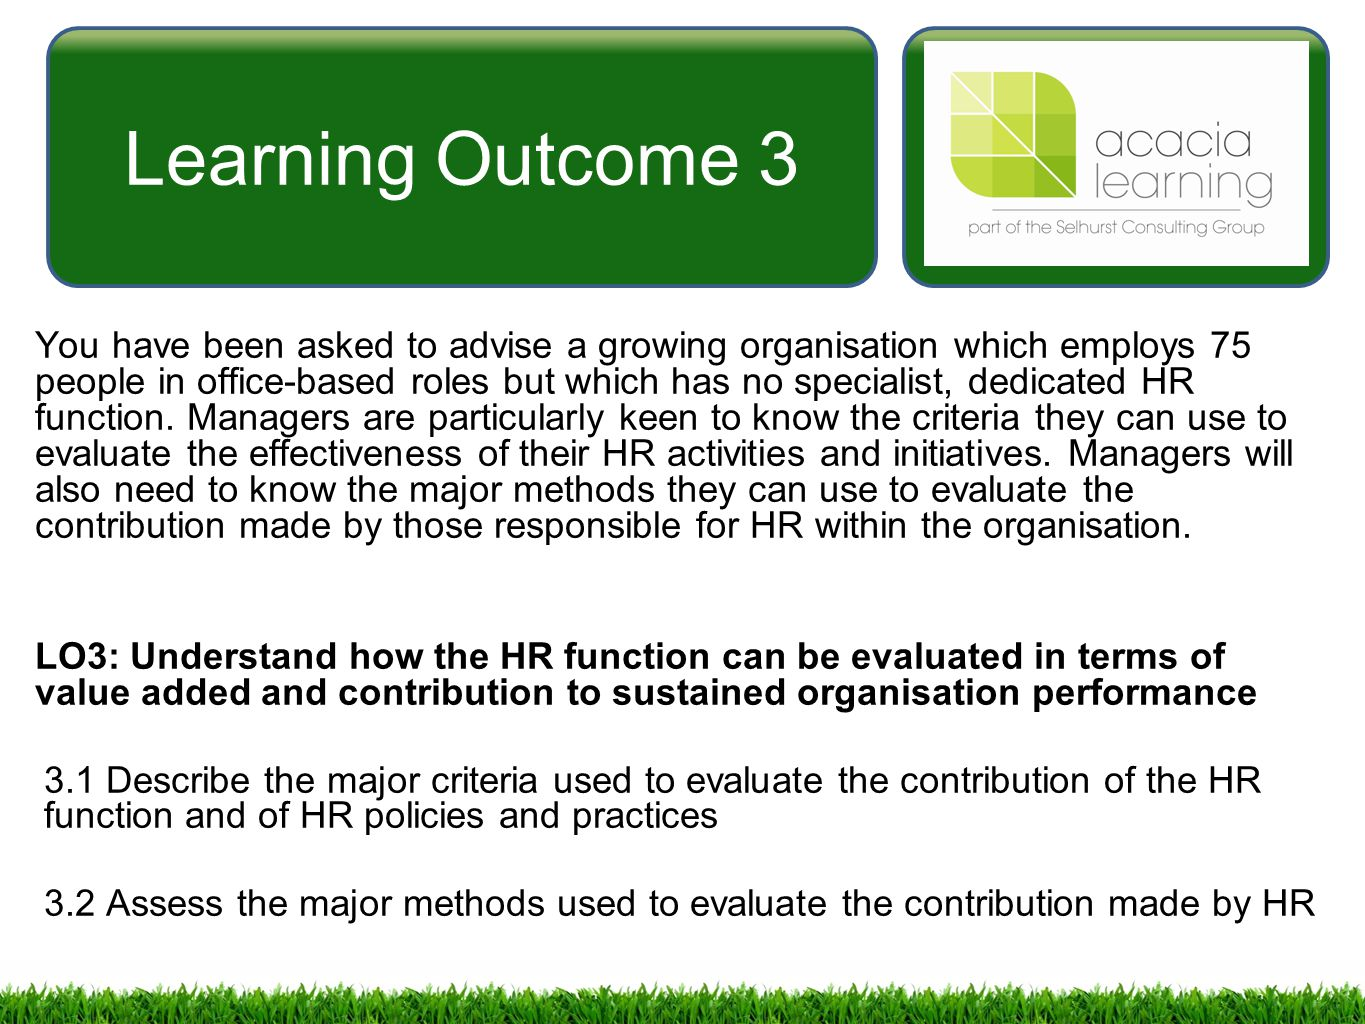 evaluating hr function Examining approaches to hr evaluation the strengths and weaknesses of popular measurement methods determine how much the hr function has contributed to the organization, resulting in a percent that indicates what the return on hr investments has been.